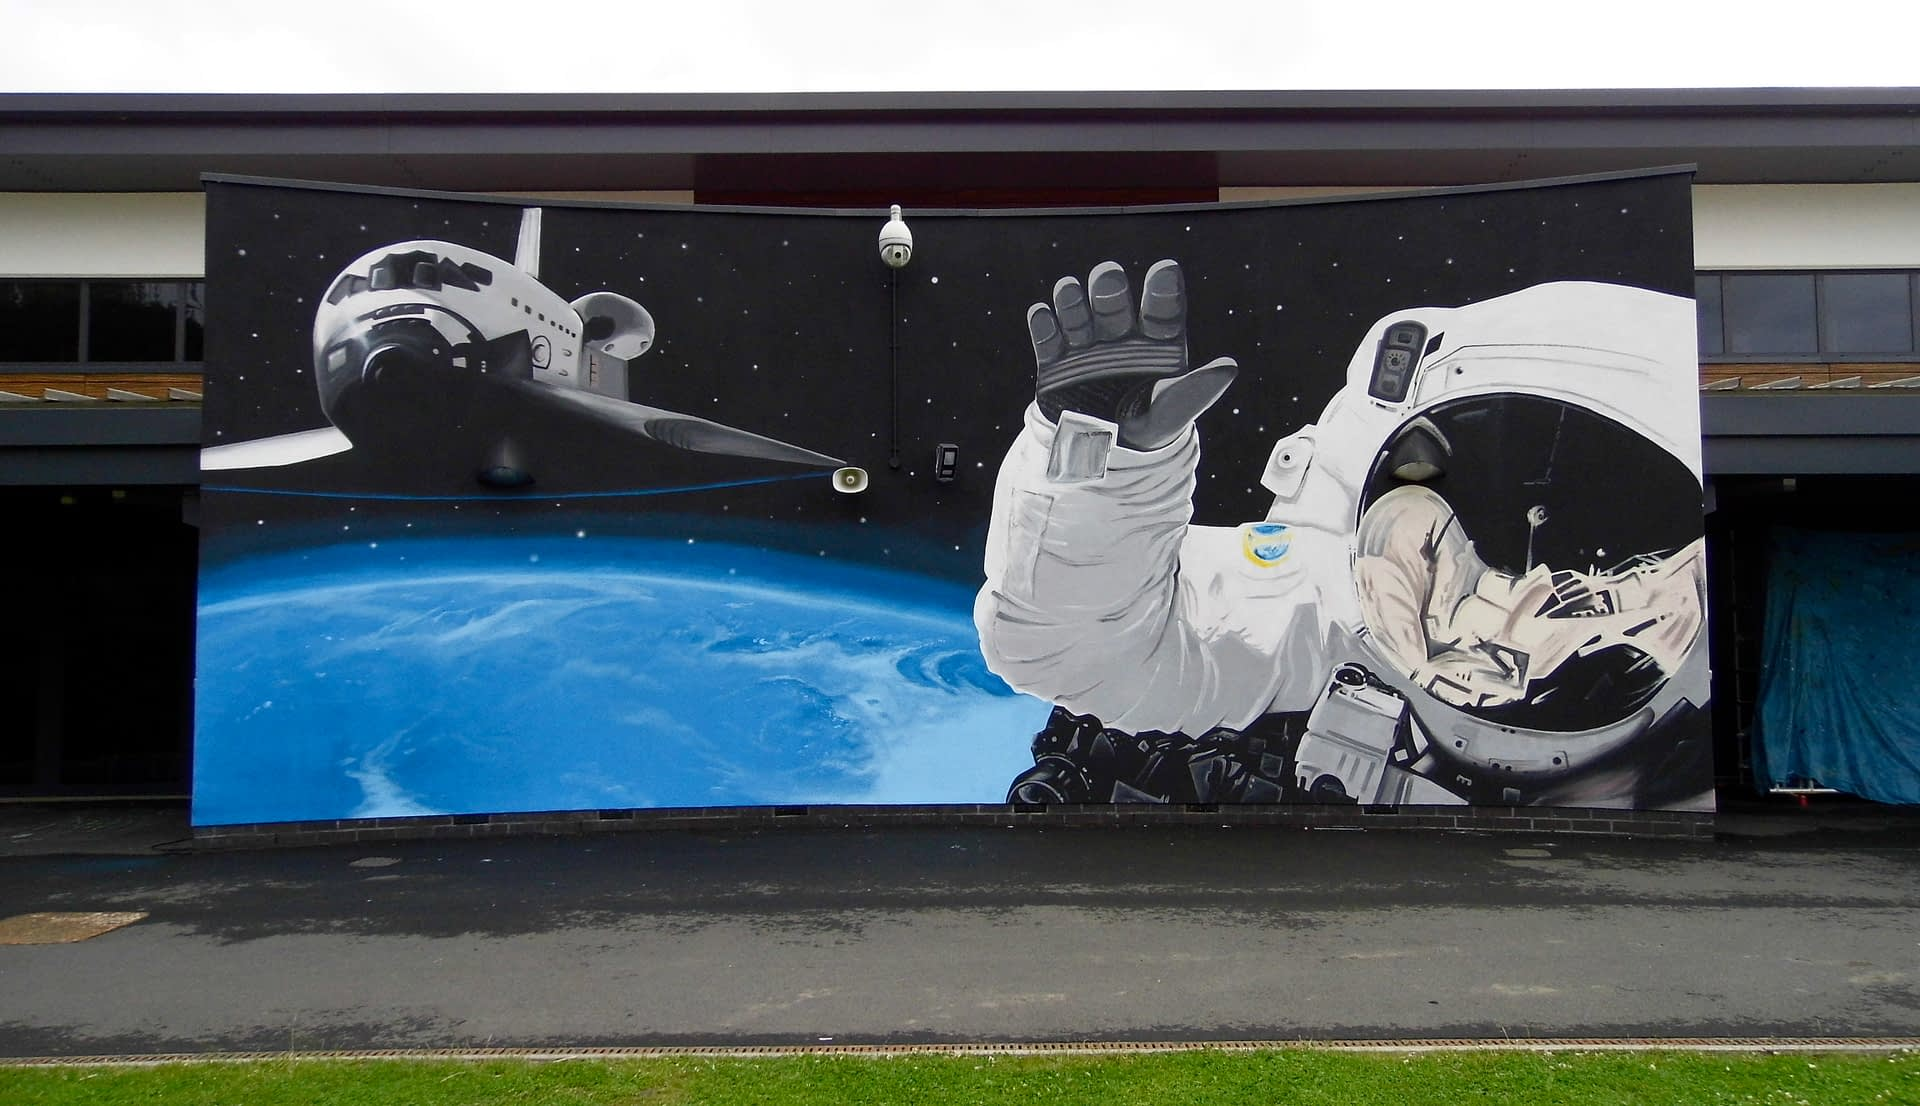 Space School Playground mural